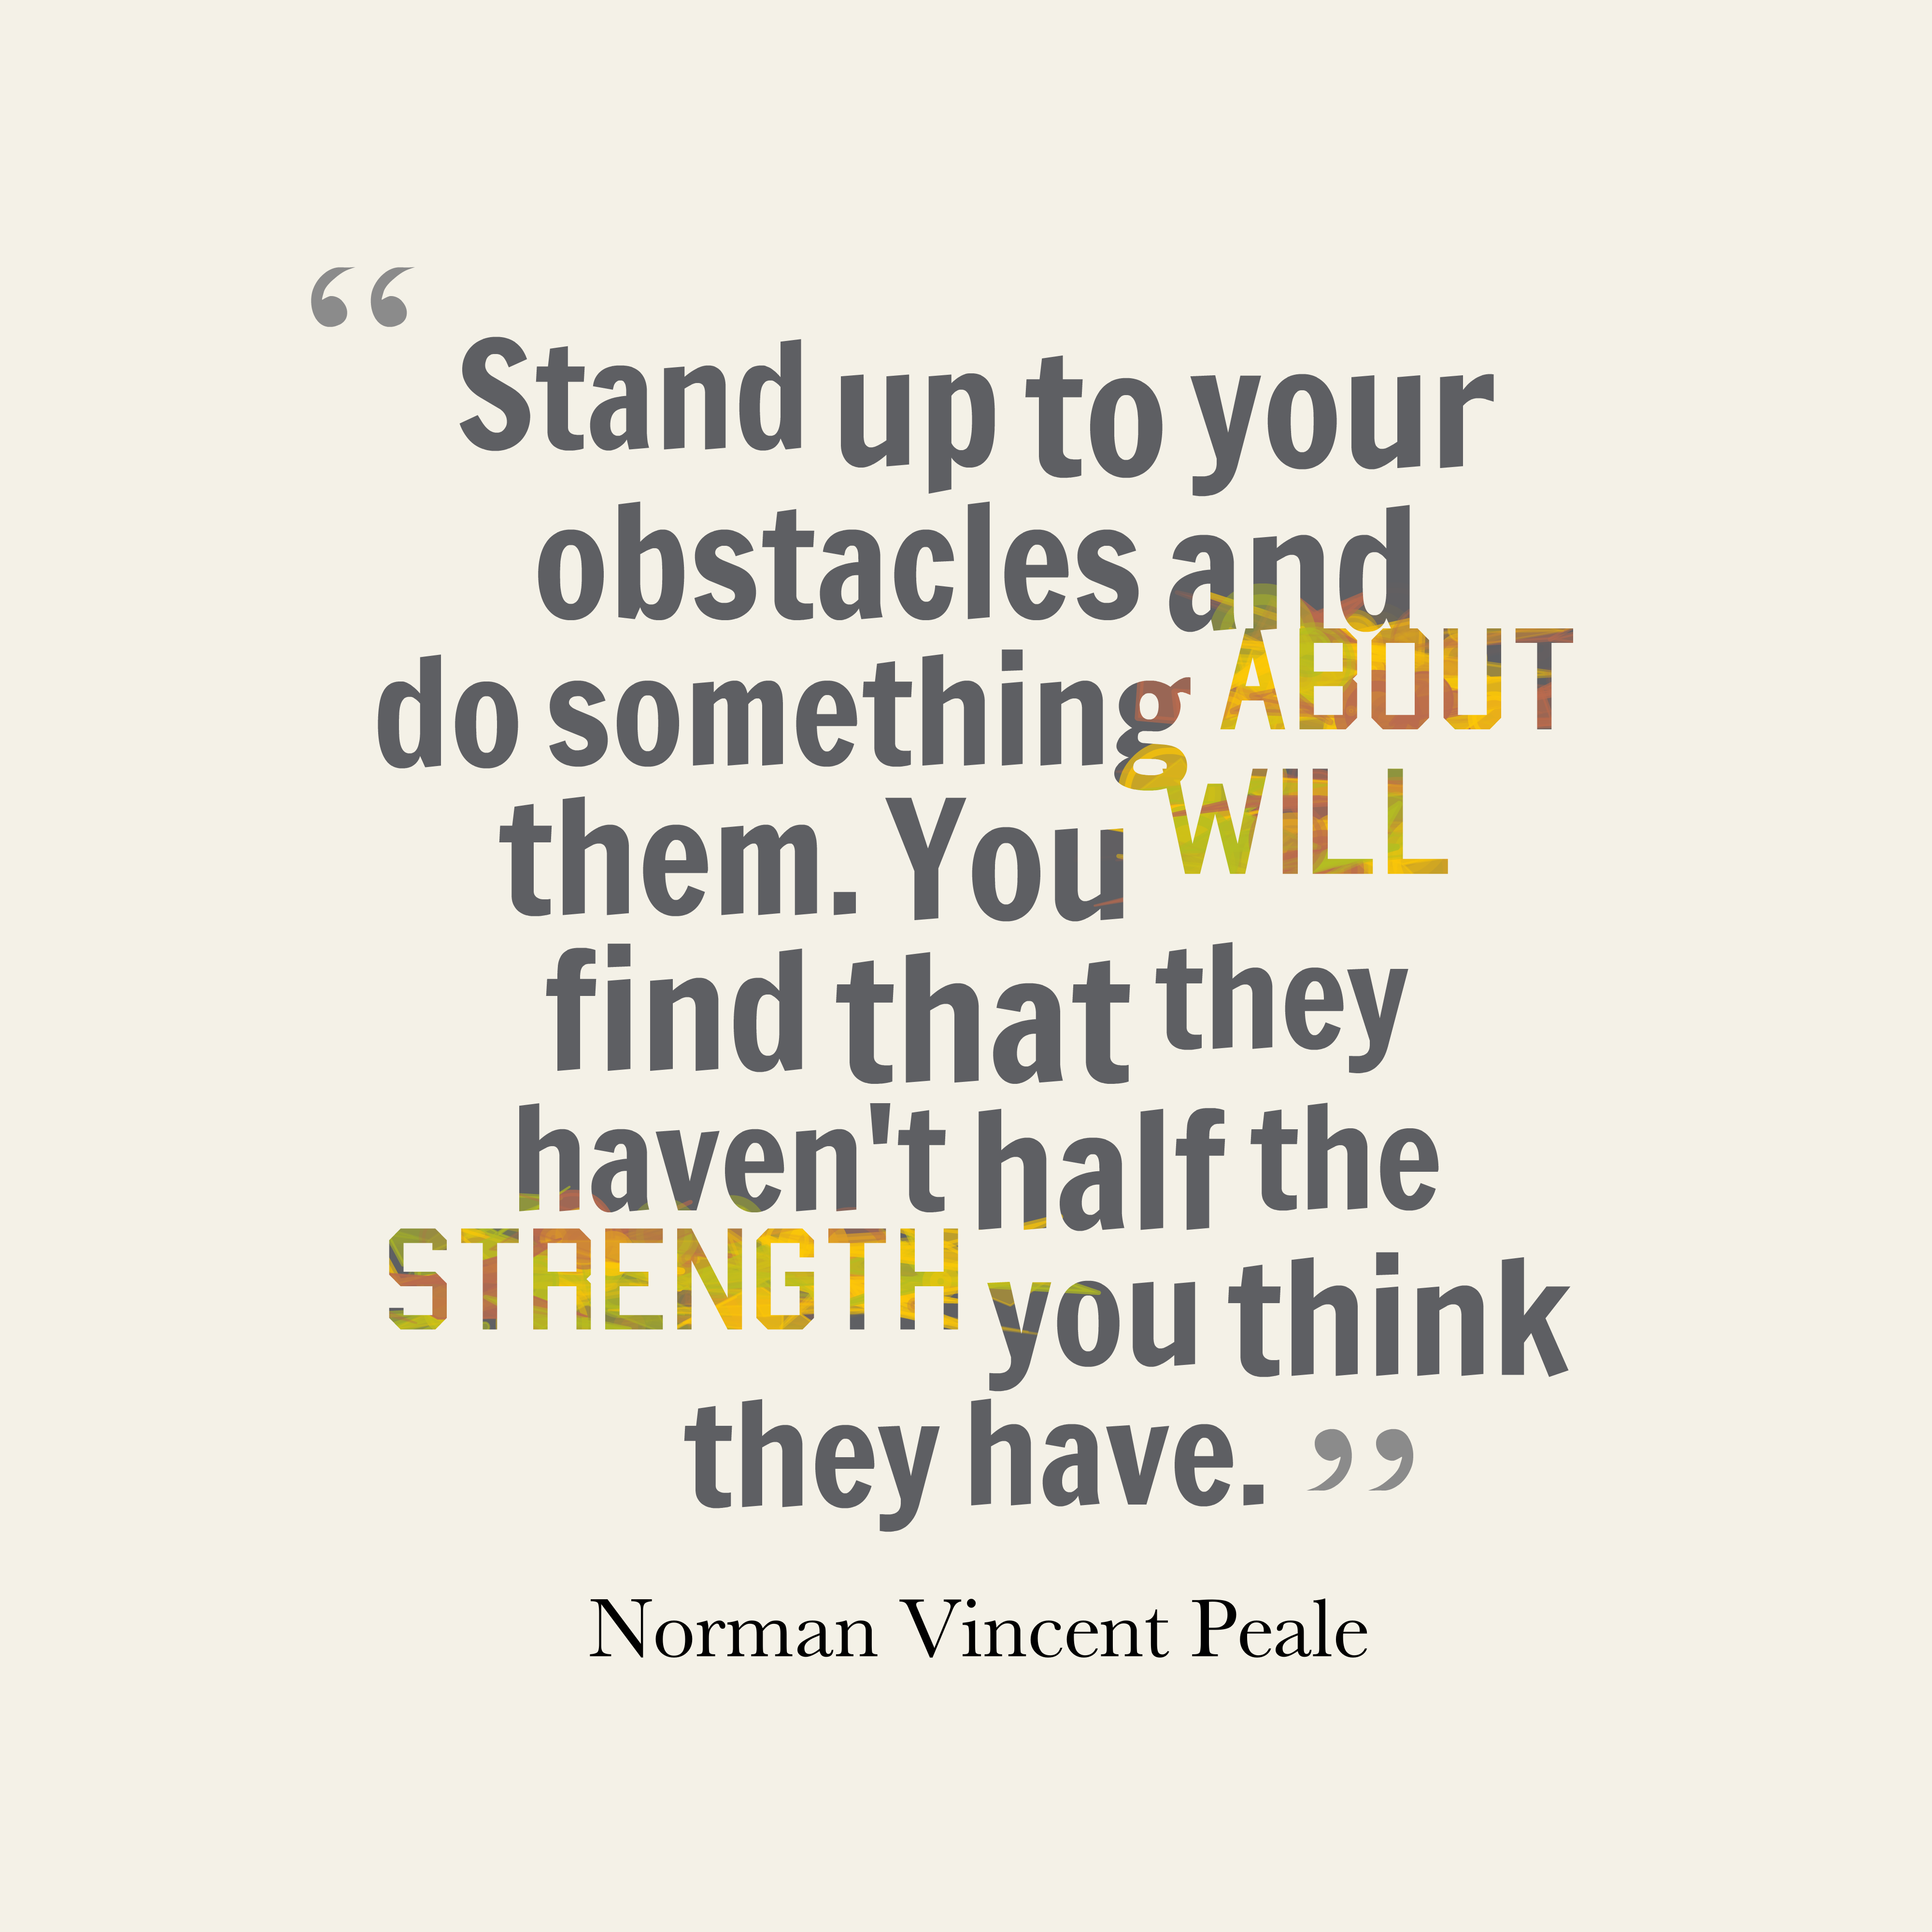 Quotes image of Stand up to your obstacles and do something about them. You will find that they haven't half the strength you think they have.